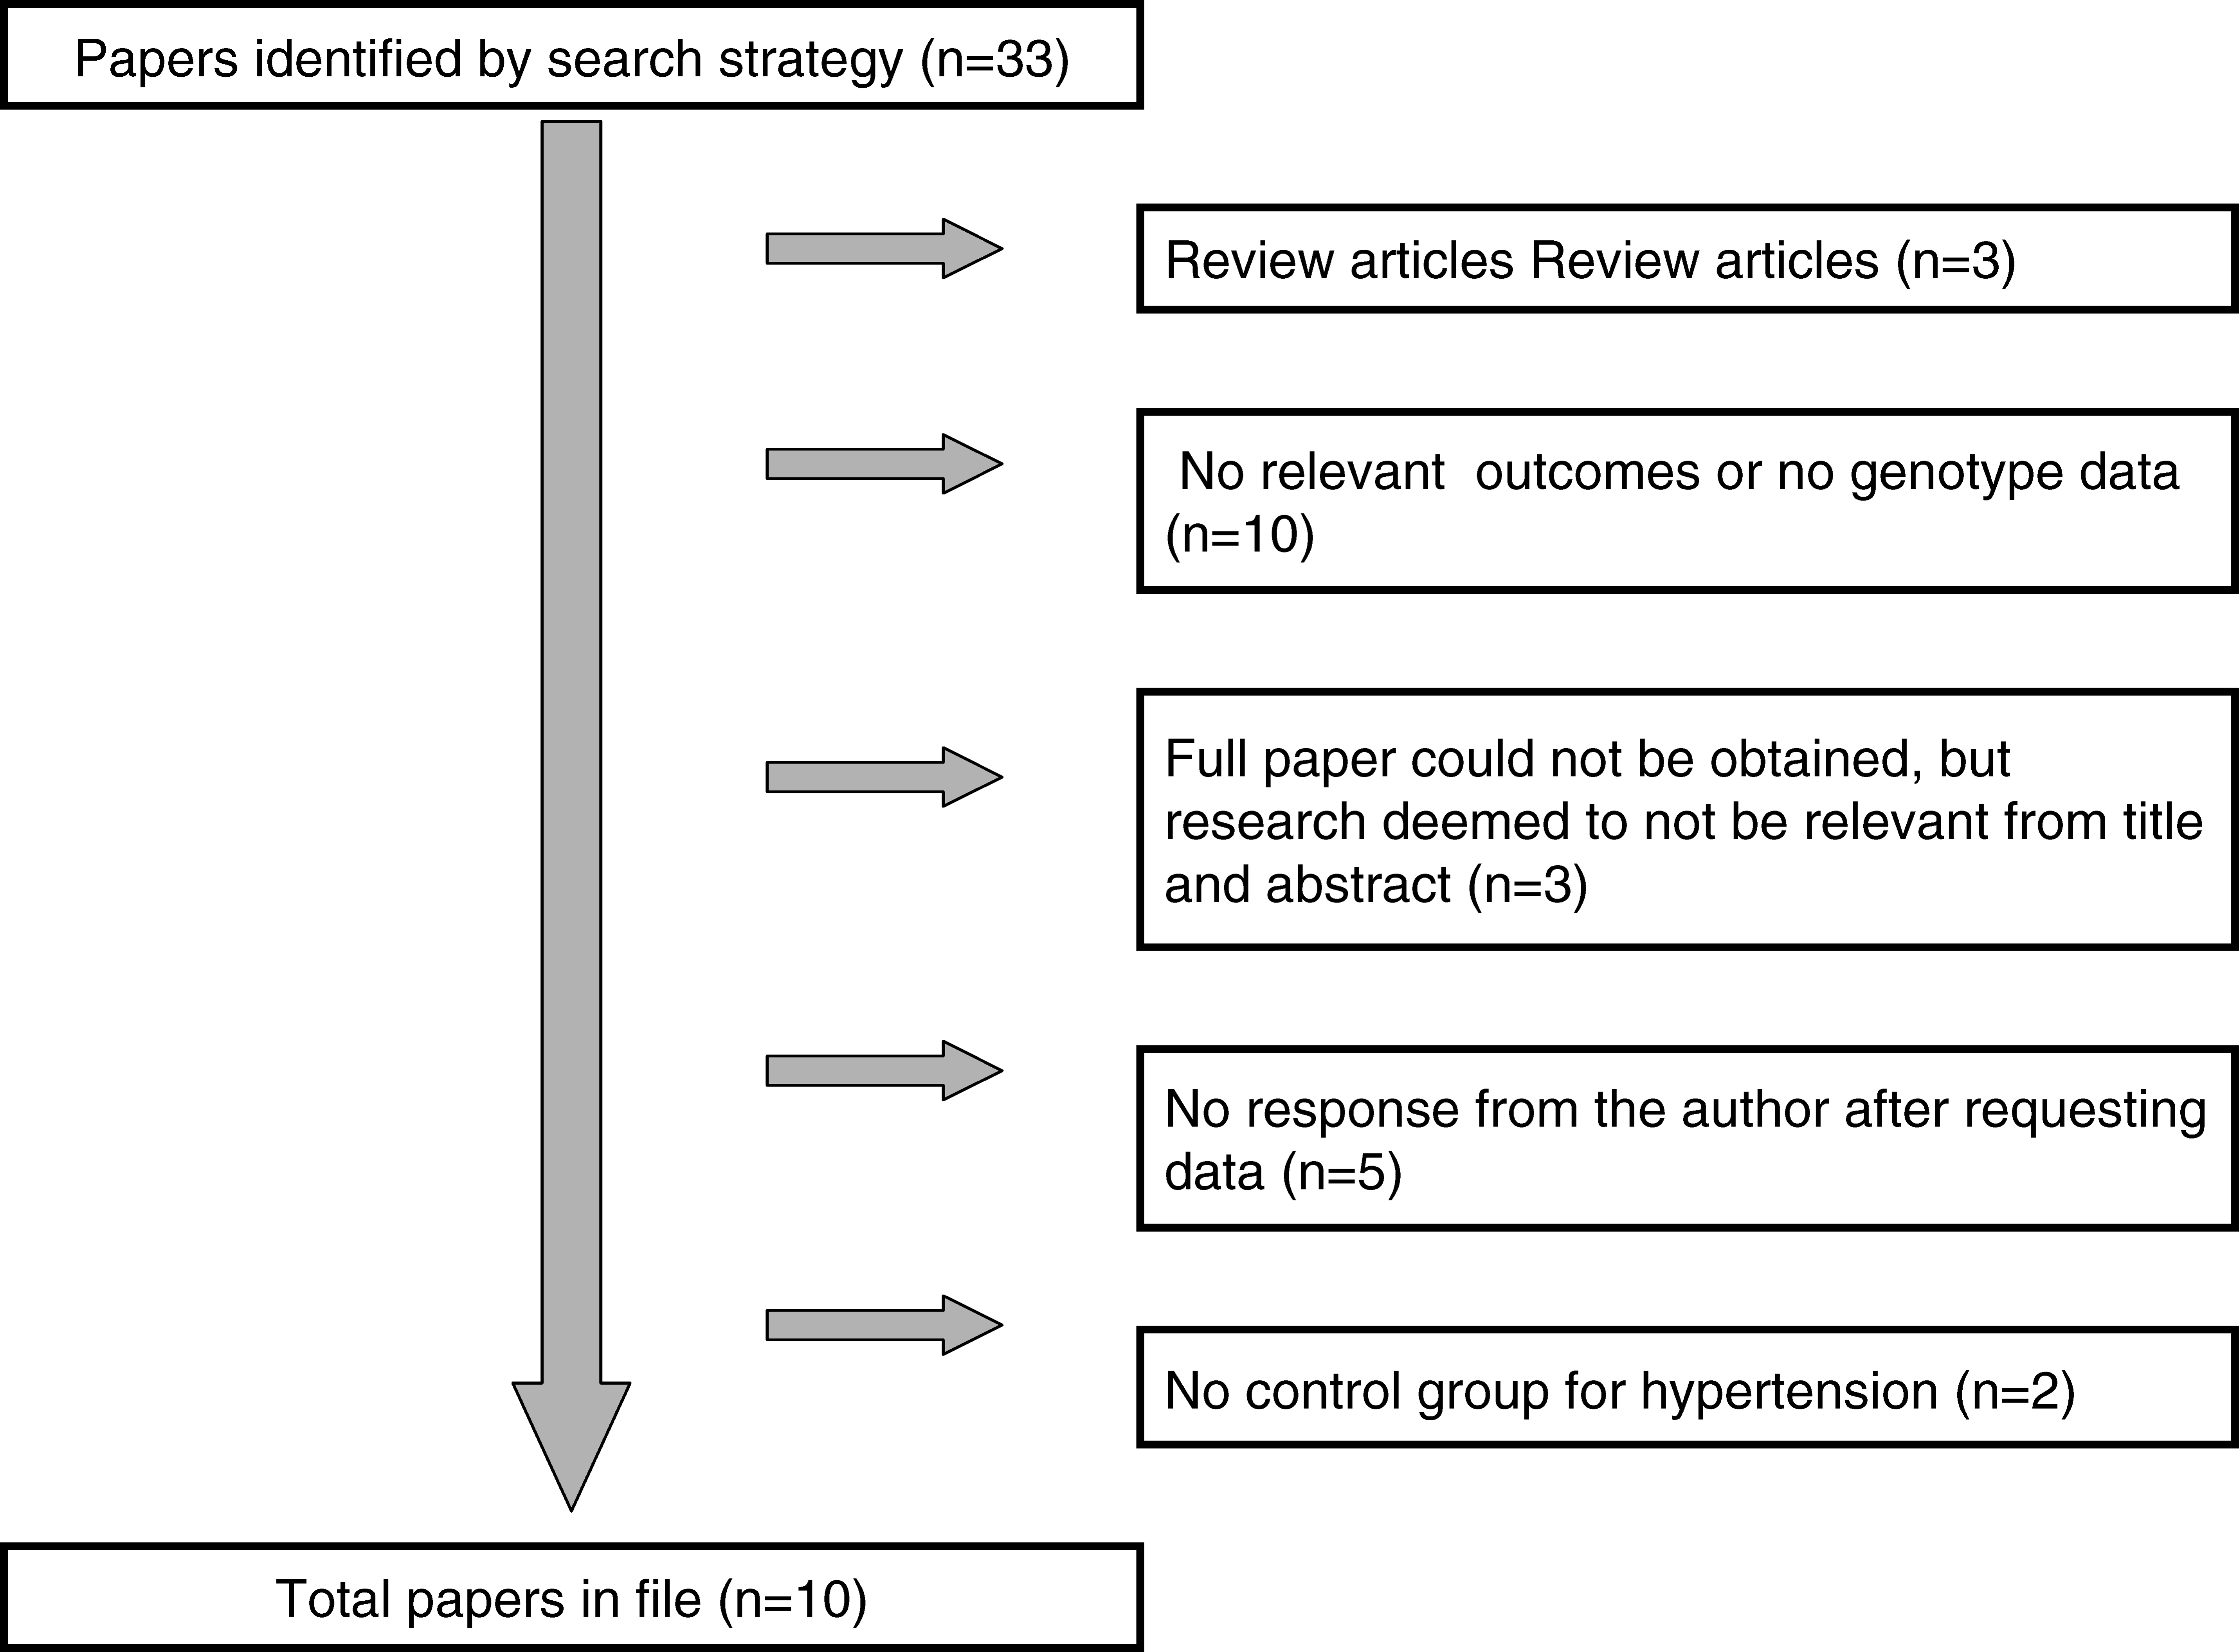 Flow Diagram Showing Reasons for Exclusion and Number of Papers Excluded